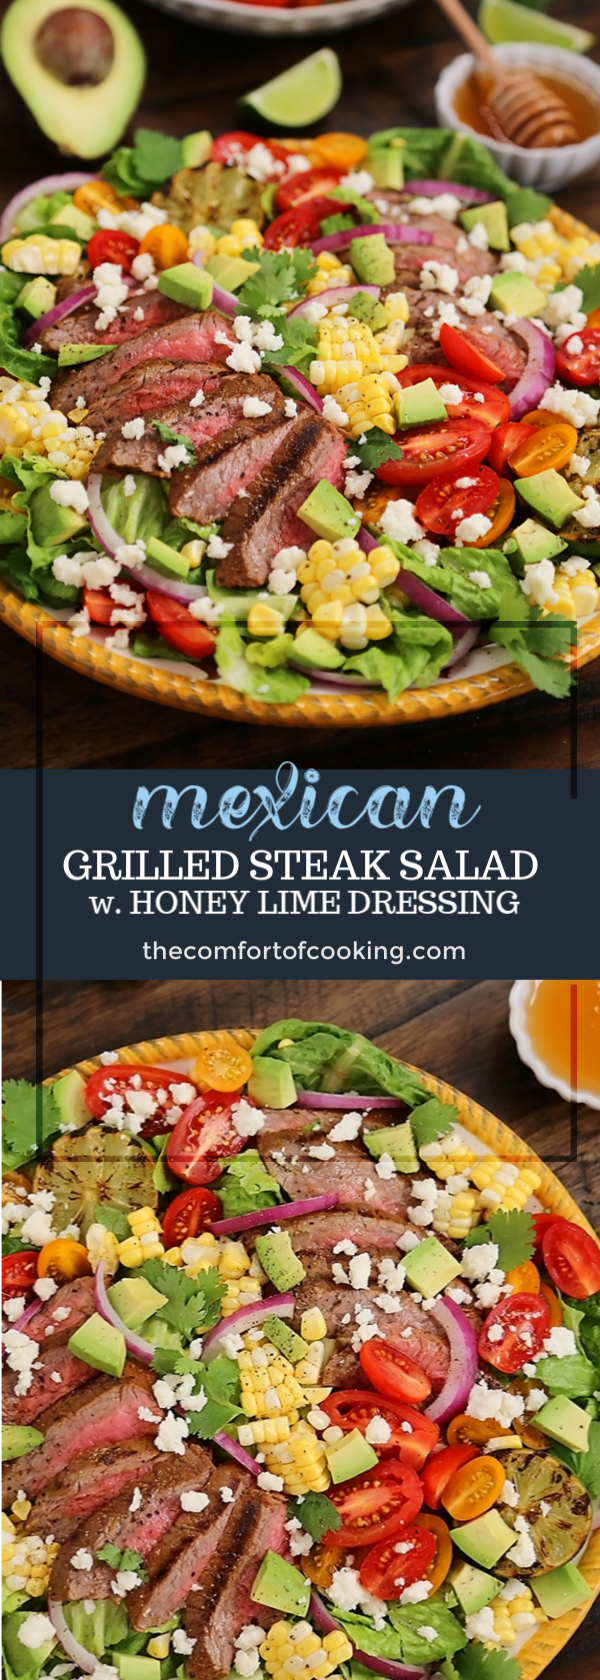 Mexican Grilled Steak Salad with Honey Lime Dressing #grilledsteakmarinades